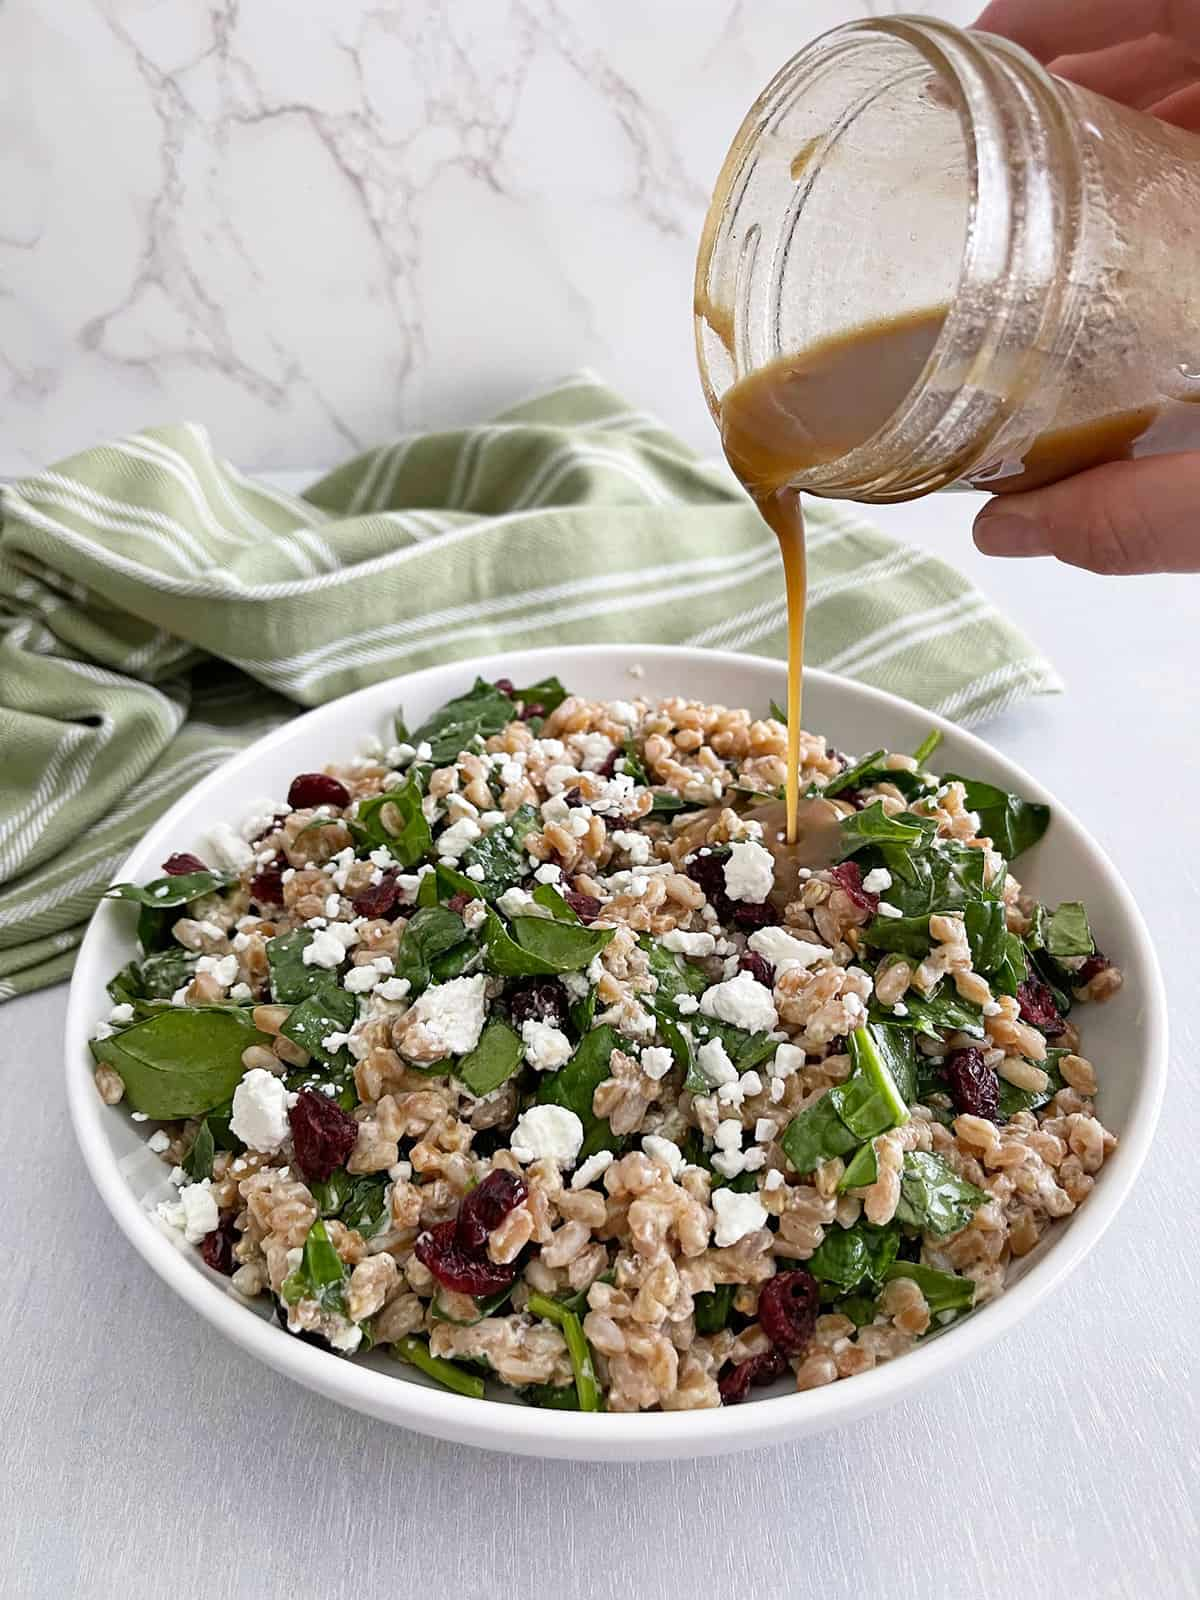 Dressing poured from mason jar over farro salad.